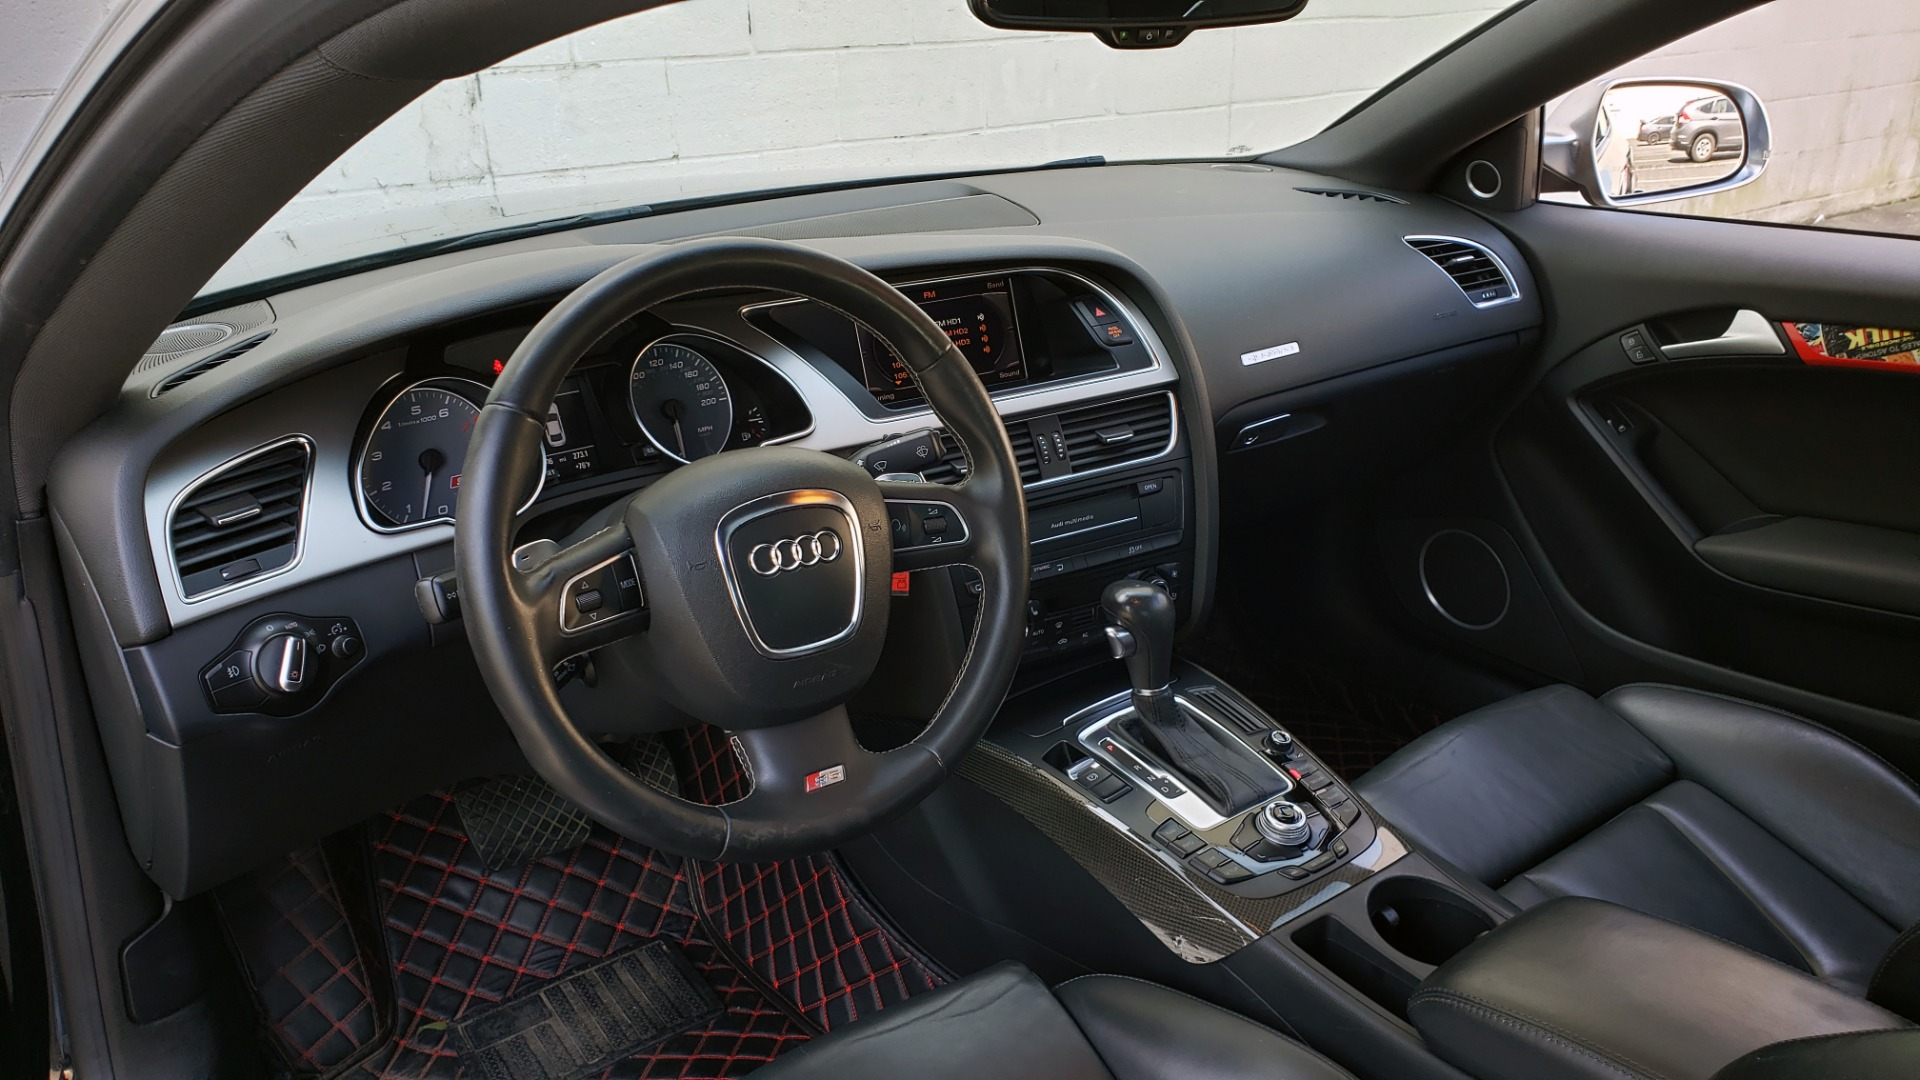 Used 2011 Audi S5 PREMIUM PLUS / AVENGERS COUPE / NAV / SUNROOF / REARVIEW for sale Sold at Formula Imports in Charlotte NC 28227 43